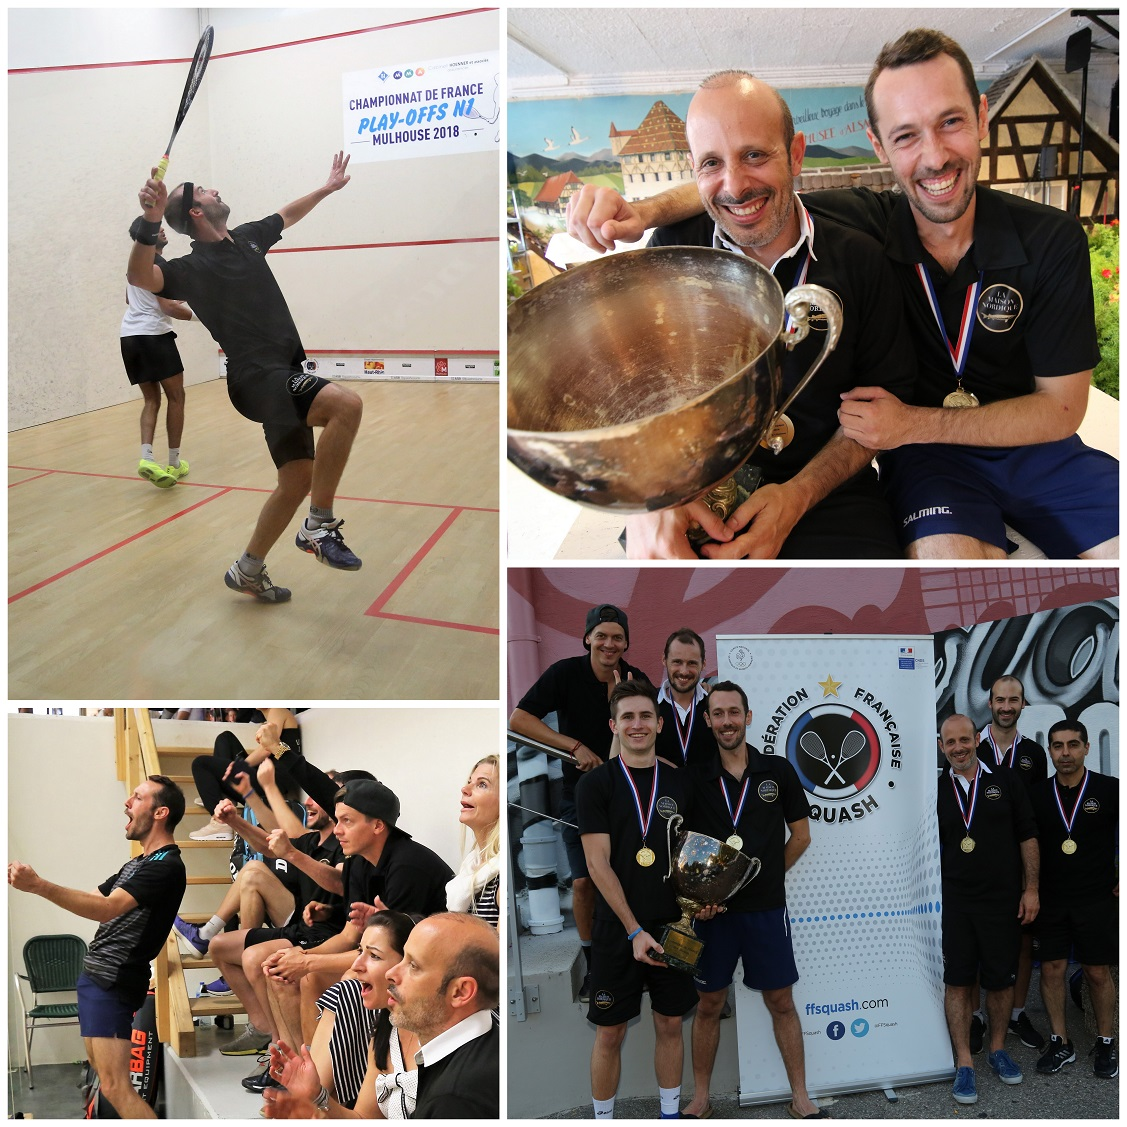 CR Play-offs N1 2018 Photo 2